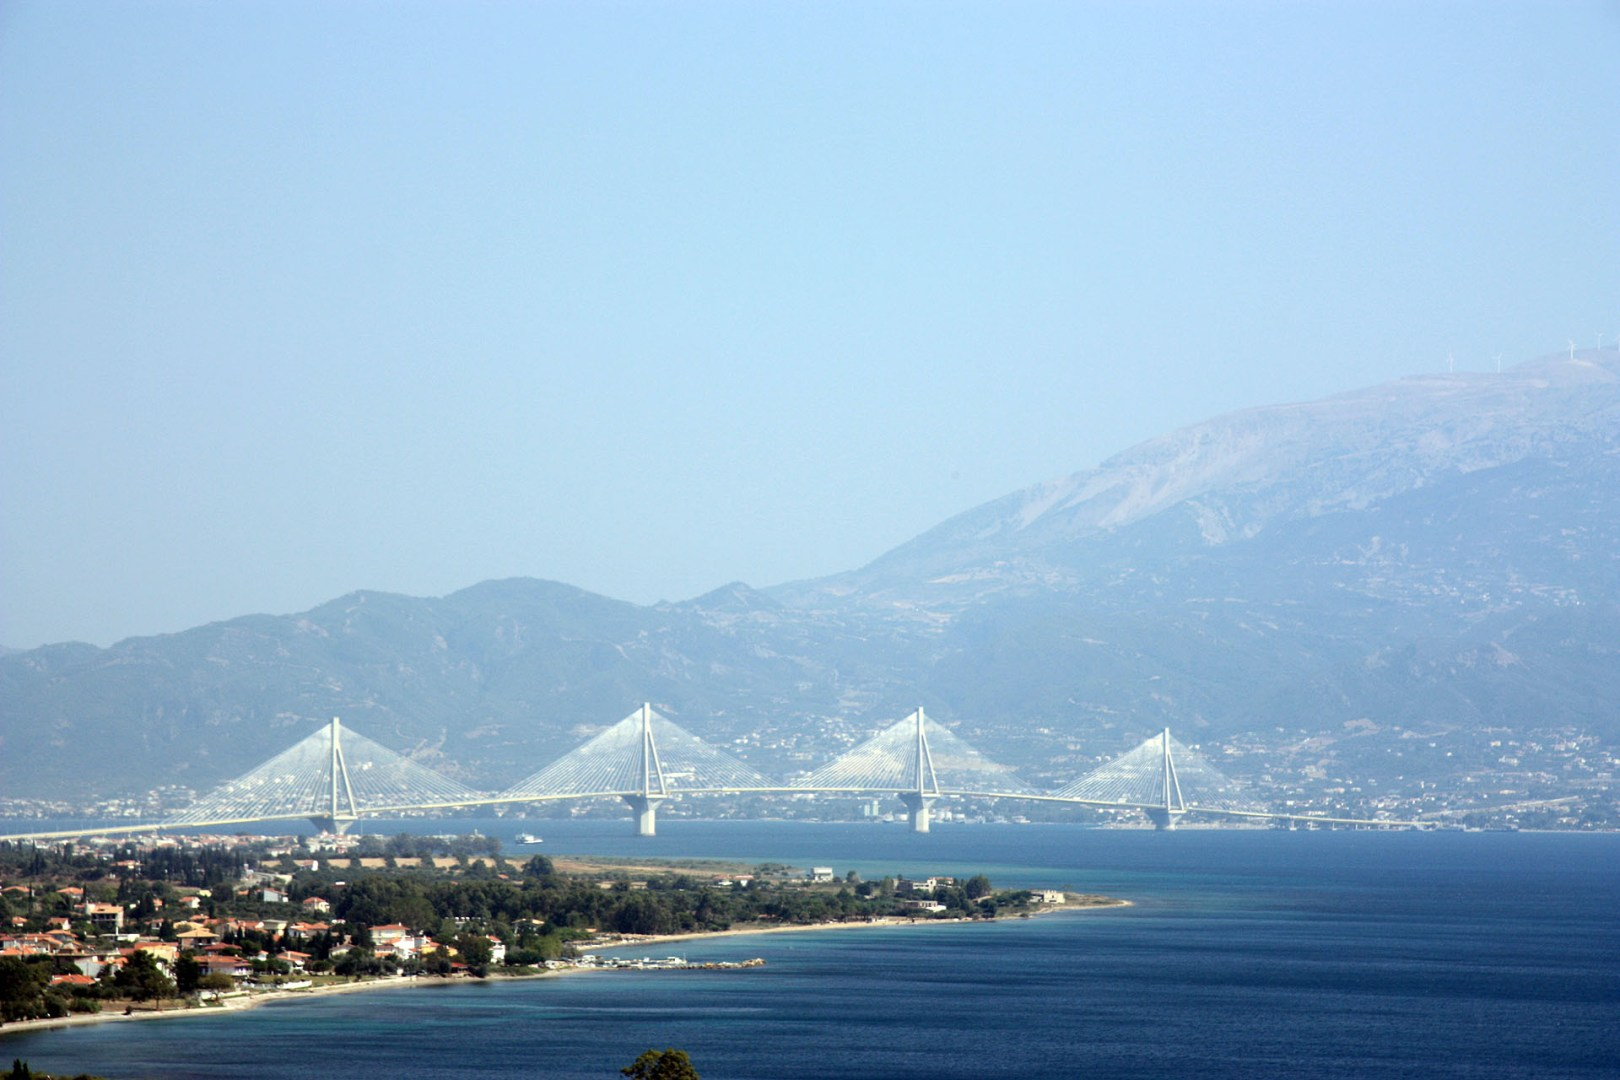 Bridge to Peloponnese